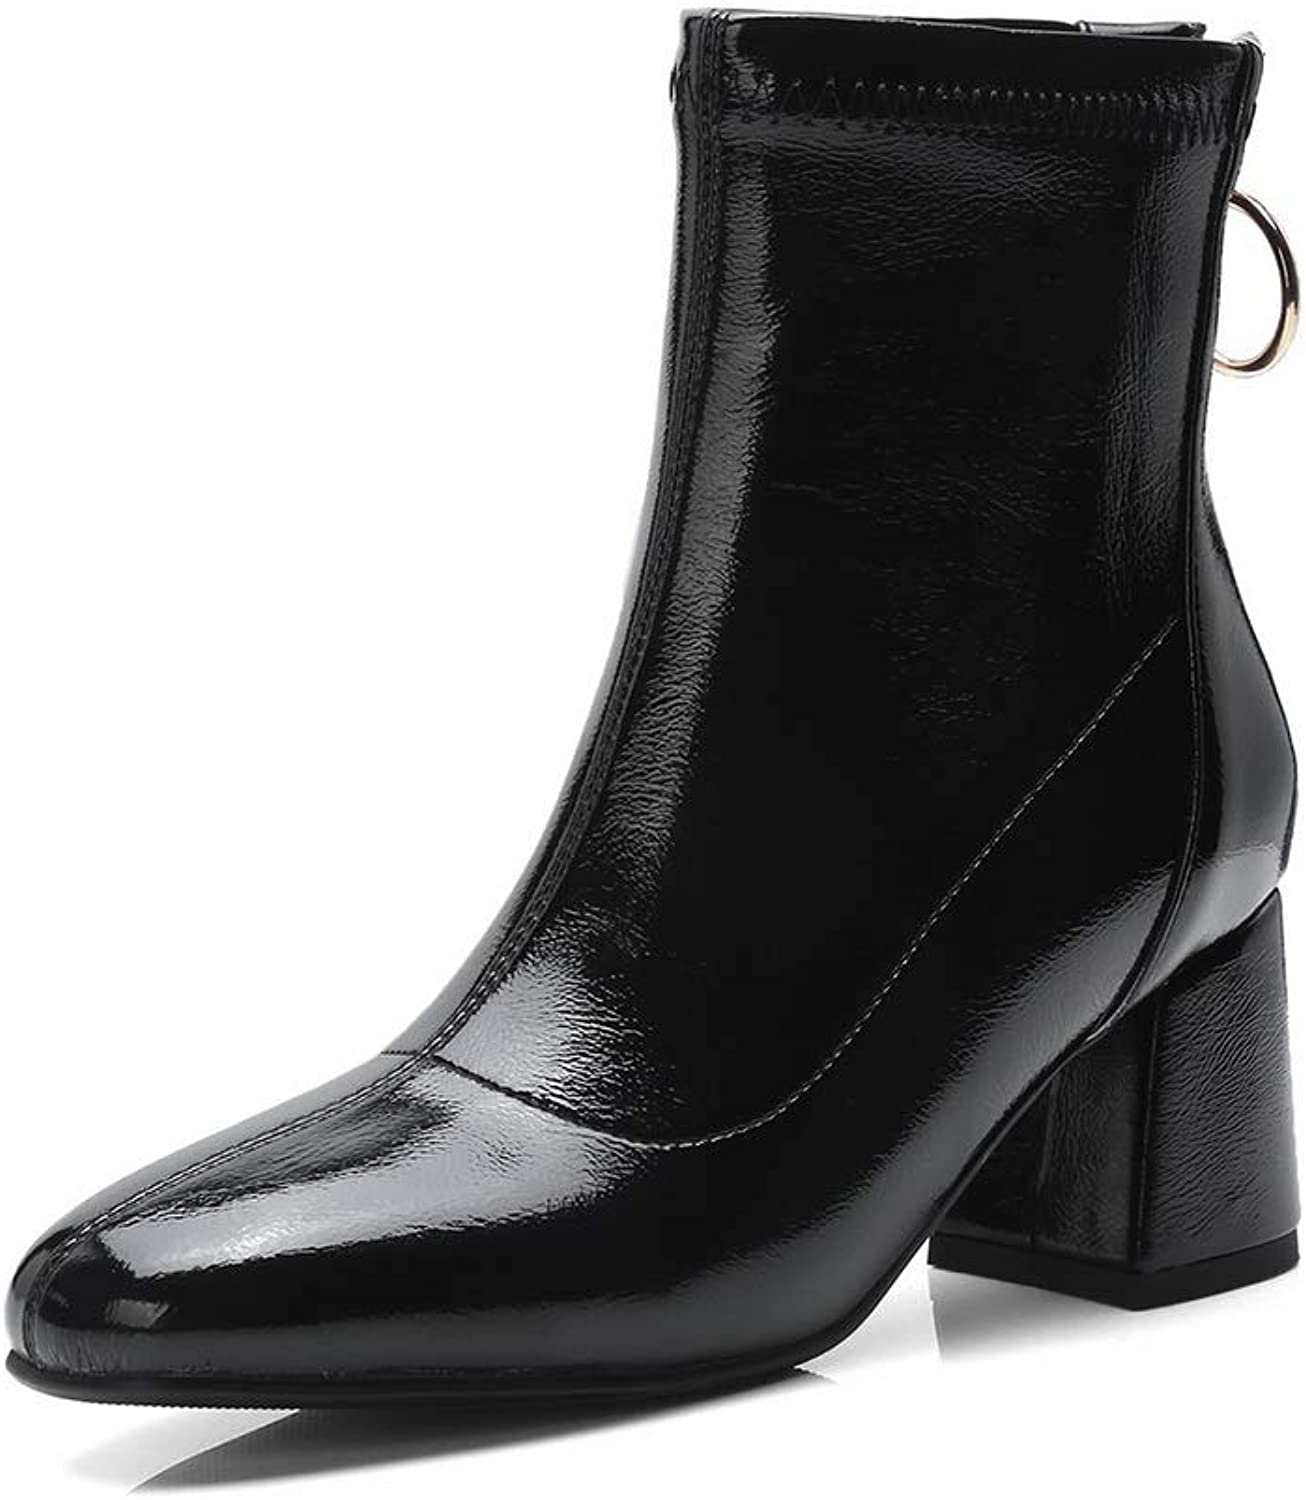 1TO9 Womens Chunky Heels Zipper Patent-Leather Boots MNS03196